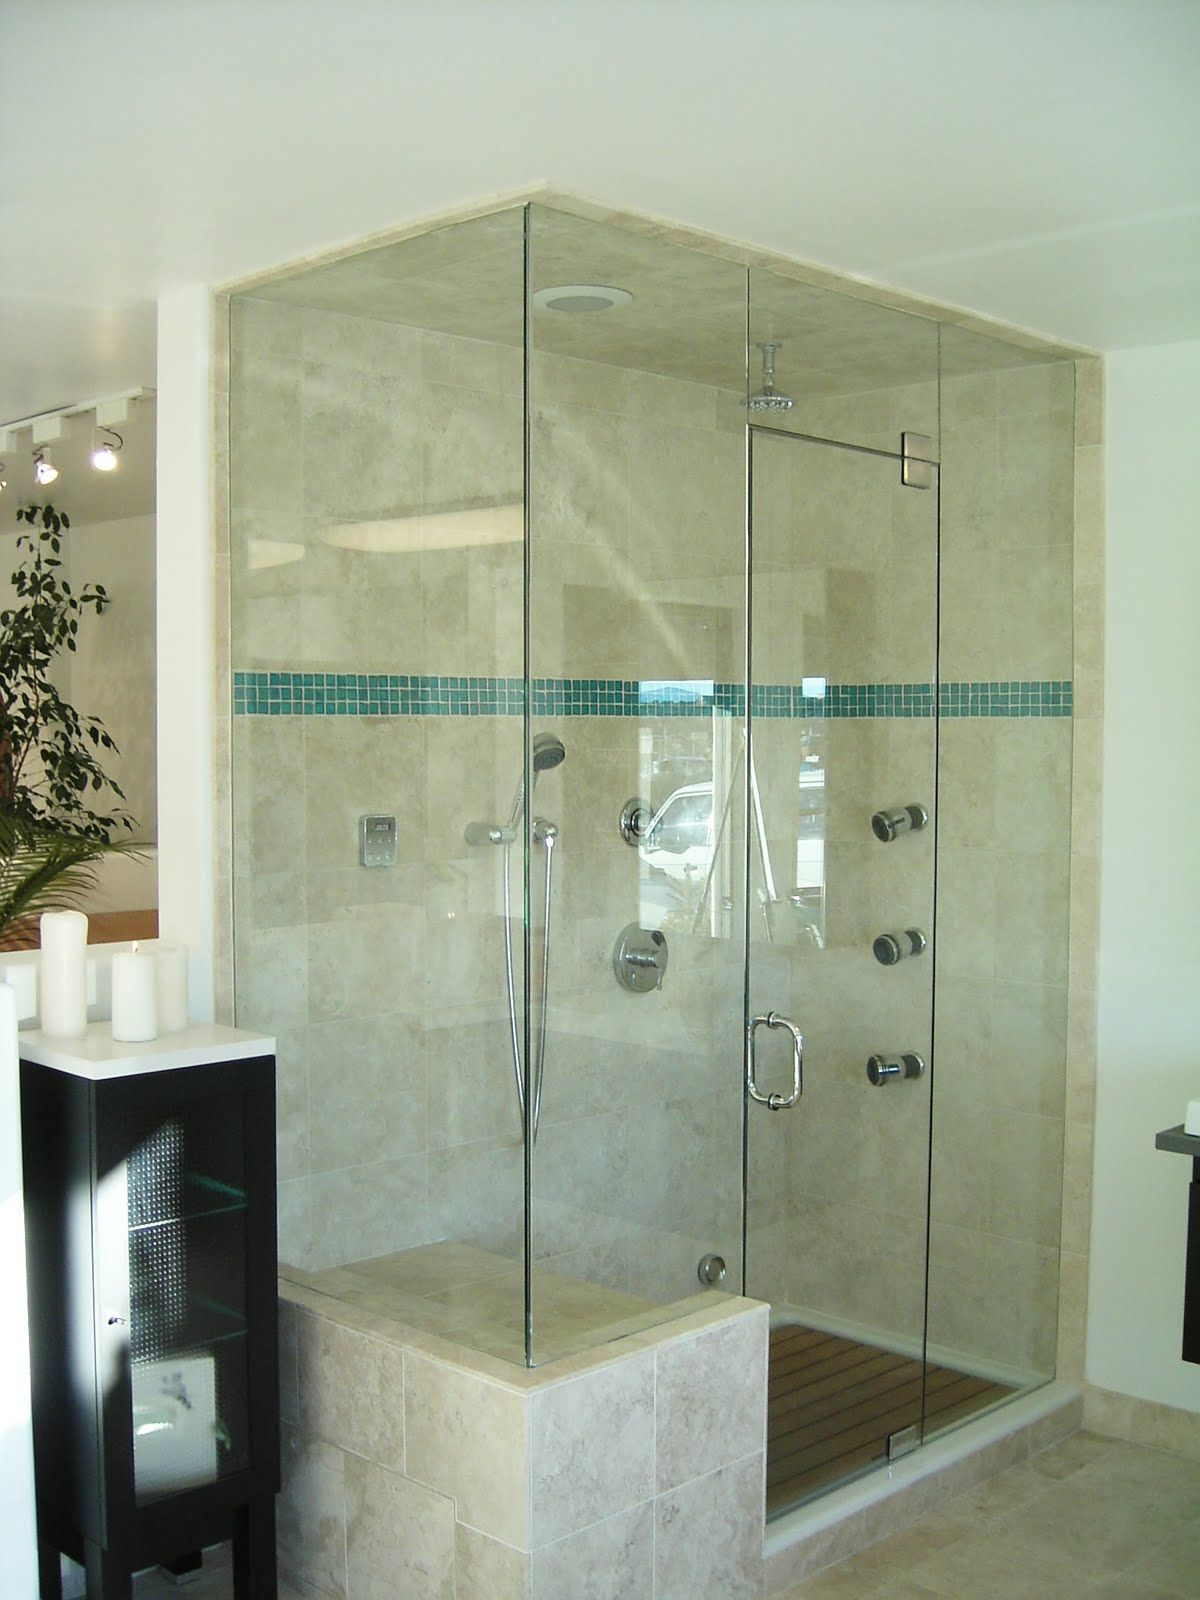 Double Shower With Seat And Timber Floor  For The Home Unique Designer Showers Bathrooms Decorating Inspiration